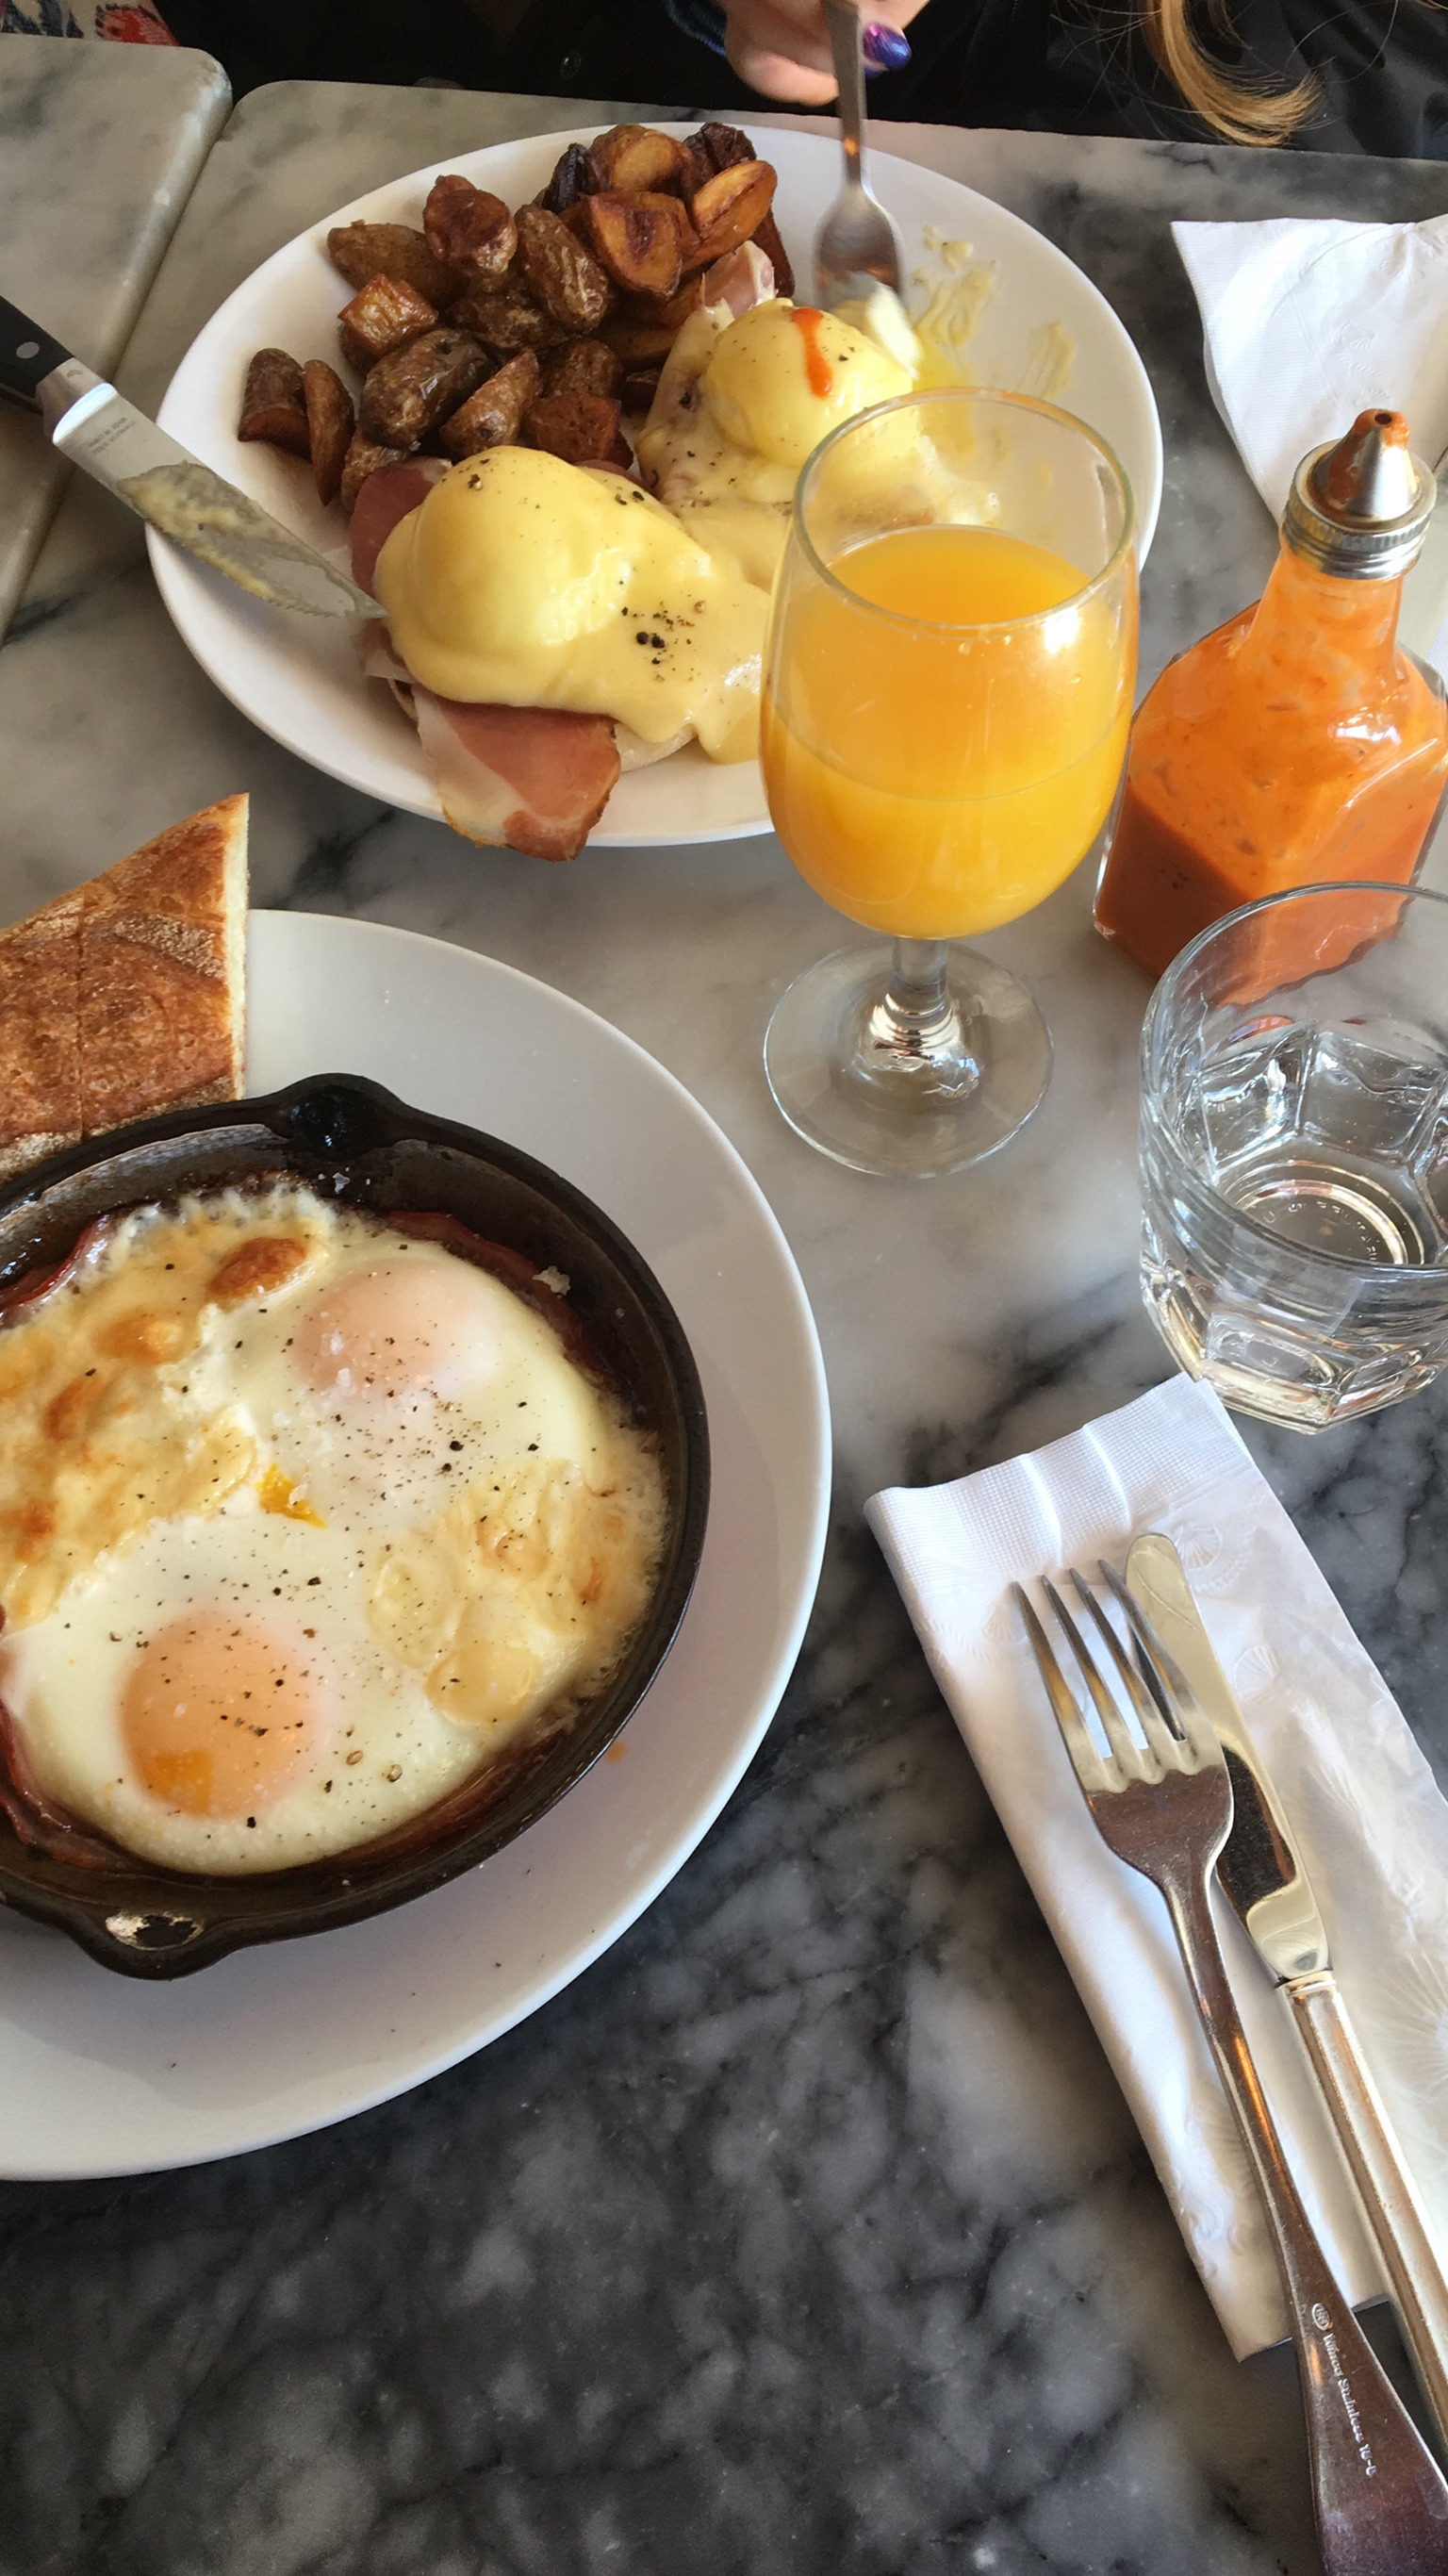 The Fat Hen - Their egg bake was the best I've ever had! There was so much flavor in their tomato sauce since it had a hit of spices from the cayenne and paprika. So make sure to try it for brunch!